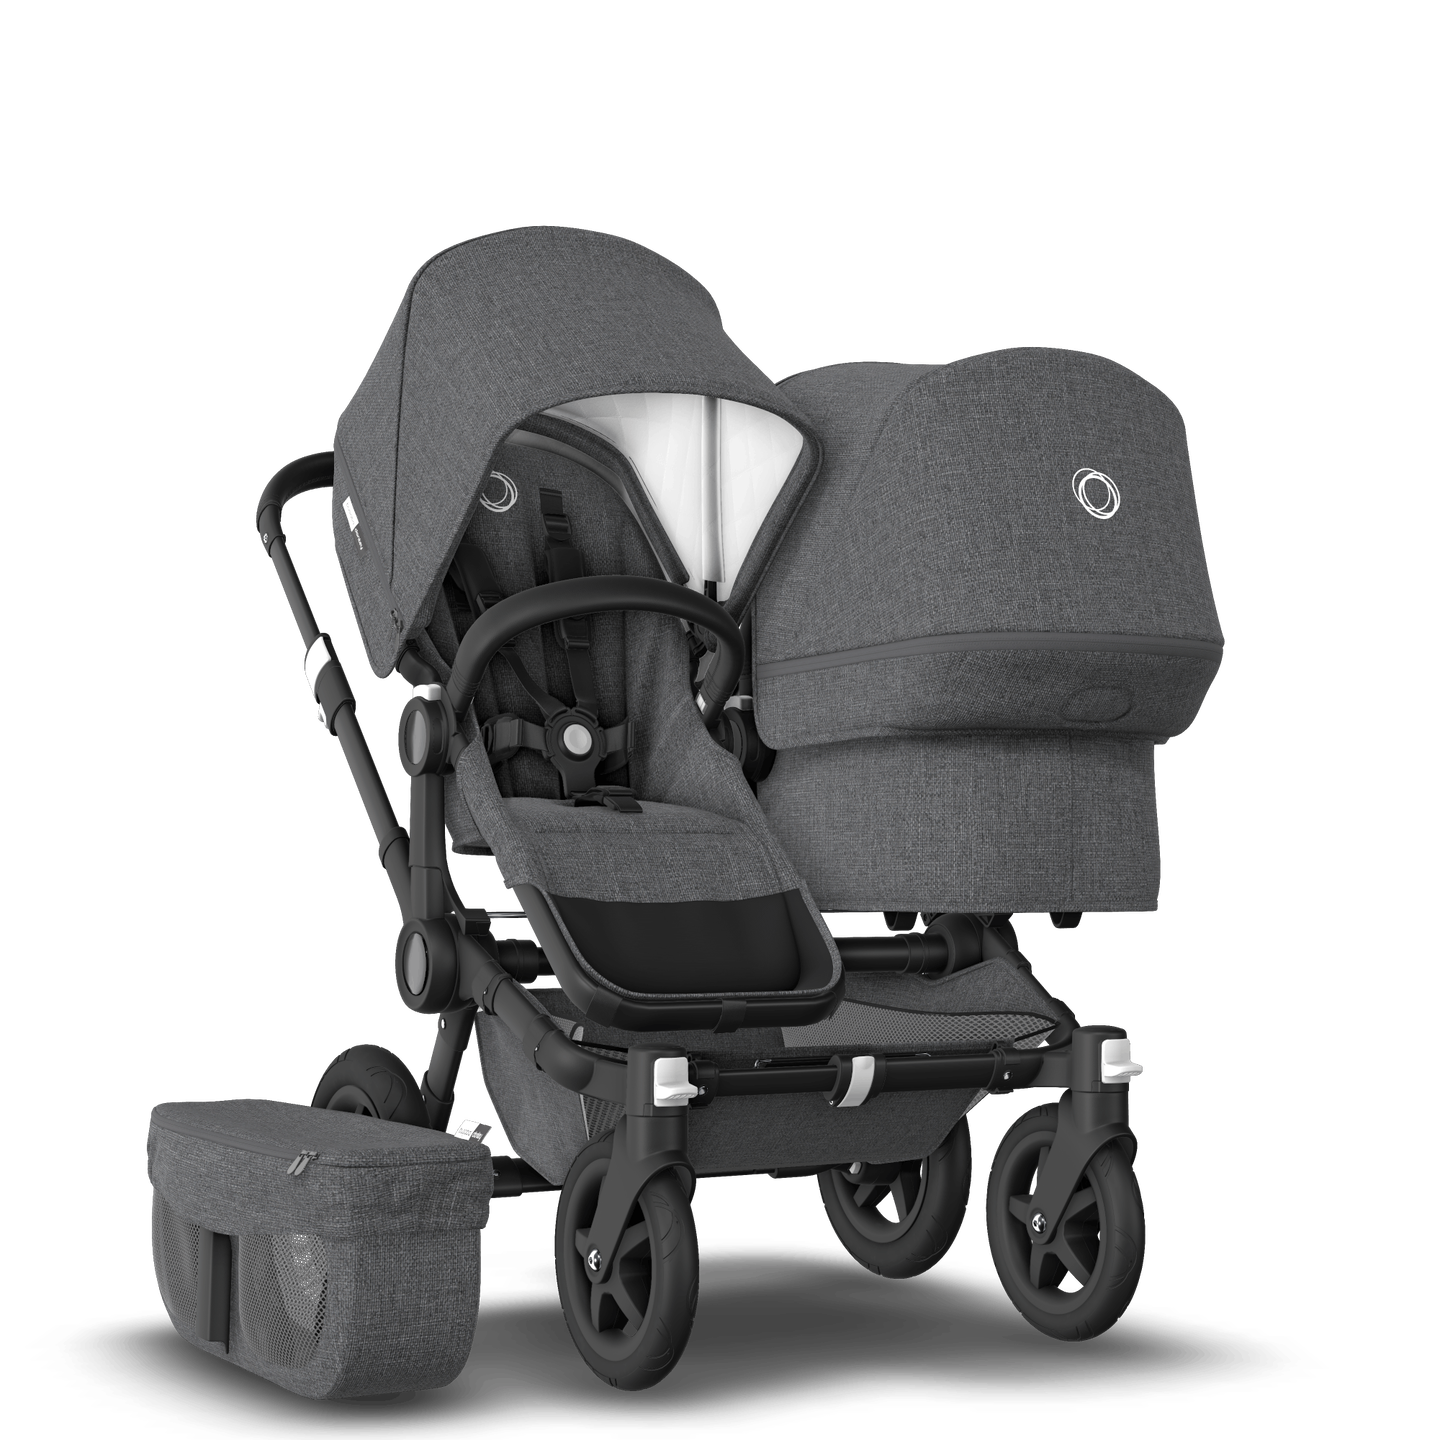 The perfect pram for every parent